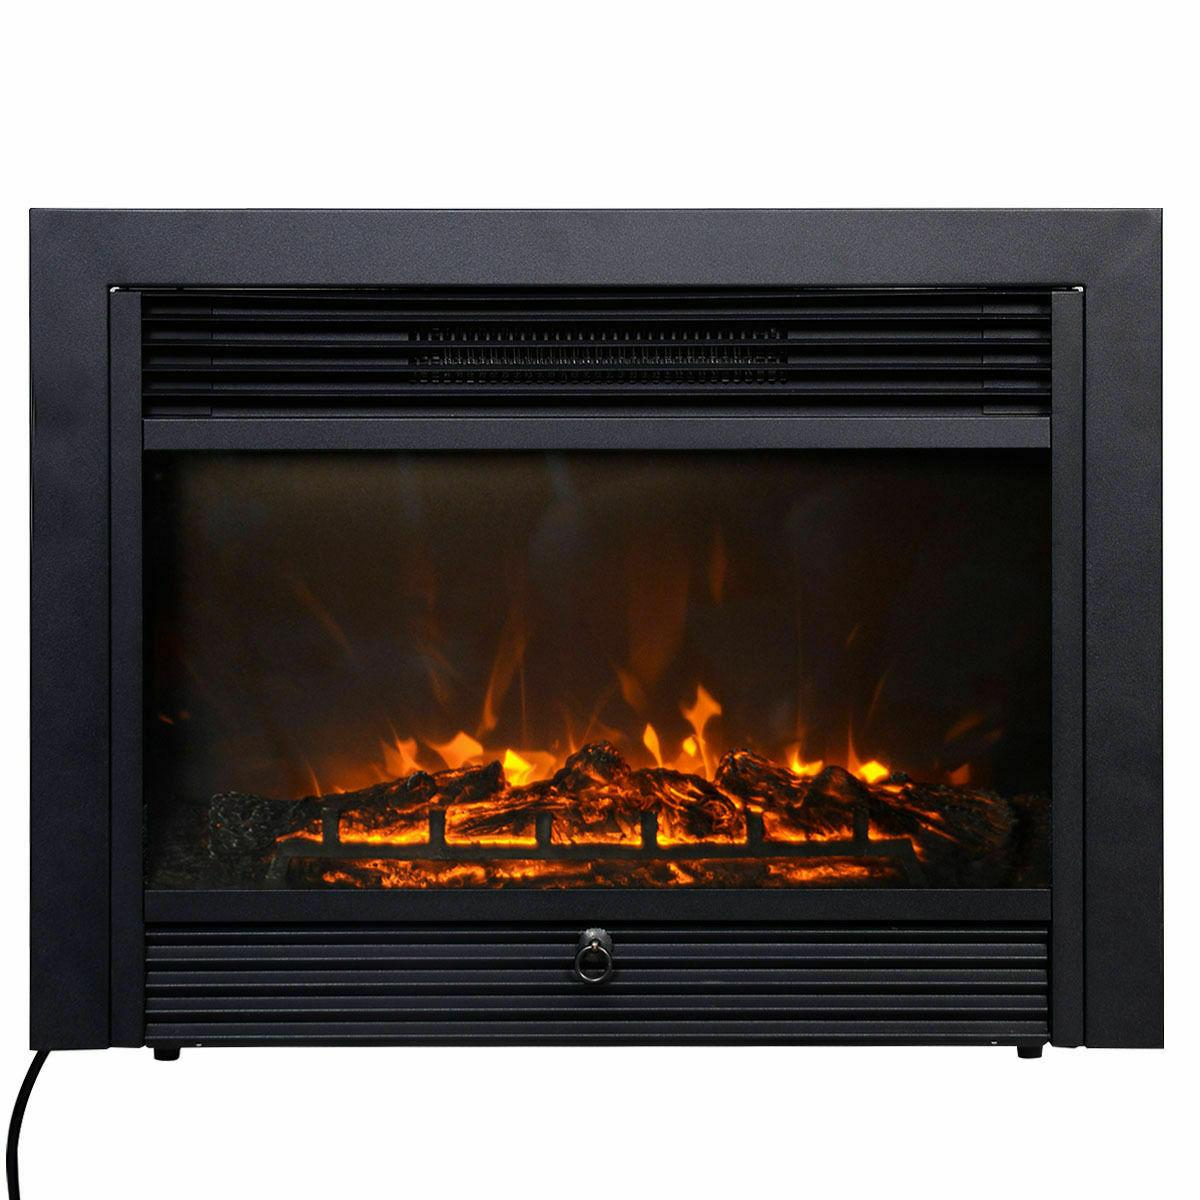 28.5'' Fireplace Insert Glass Flame Remote Easy